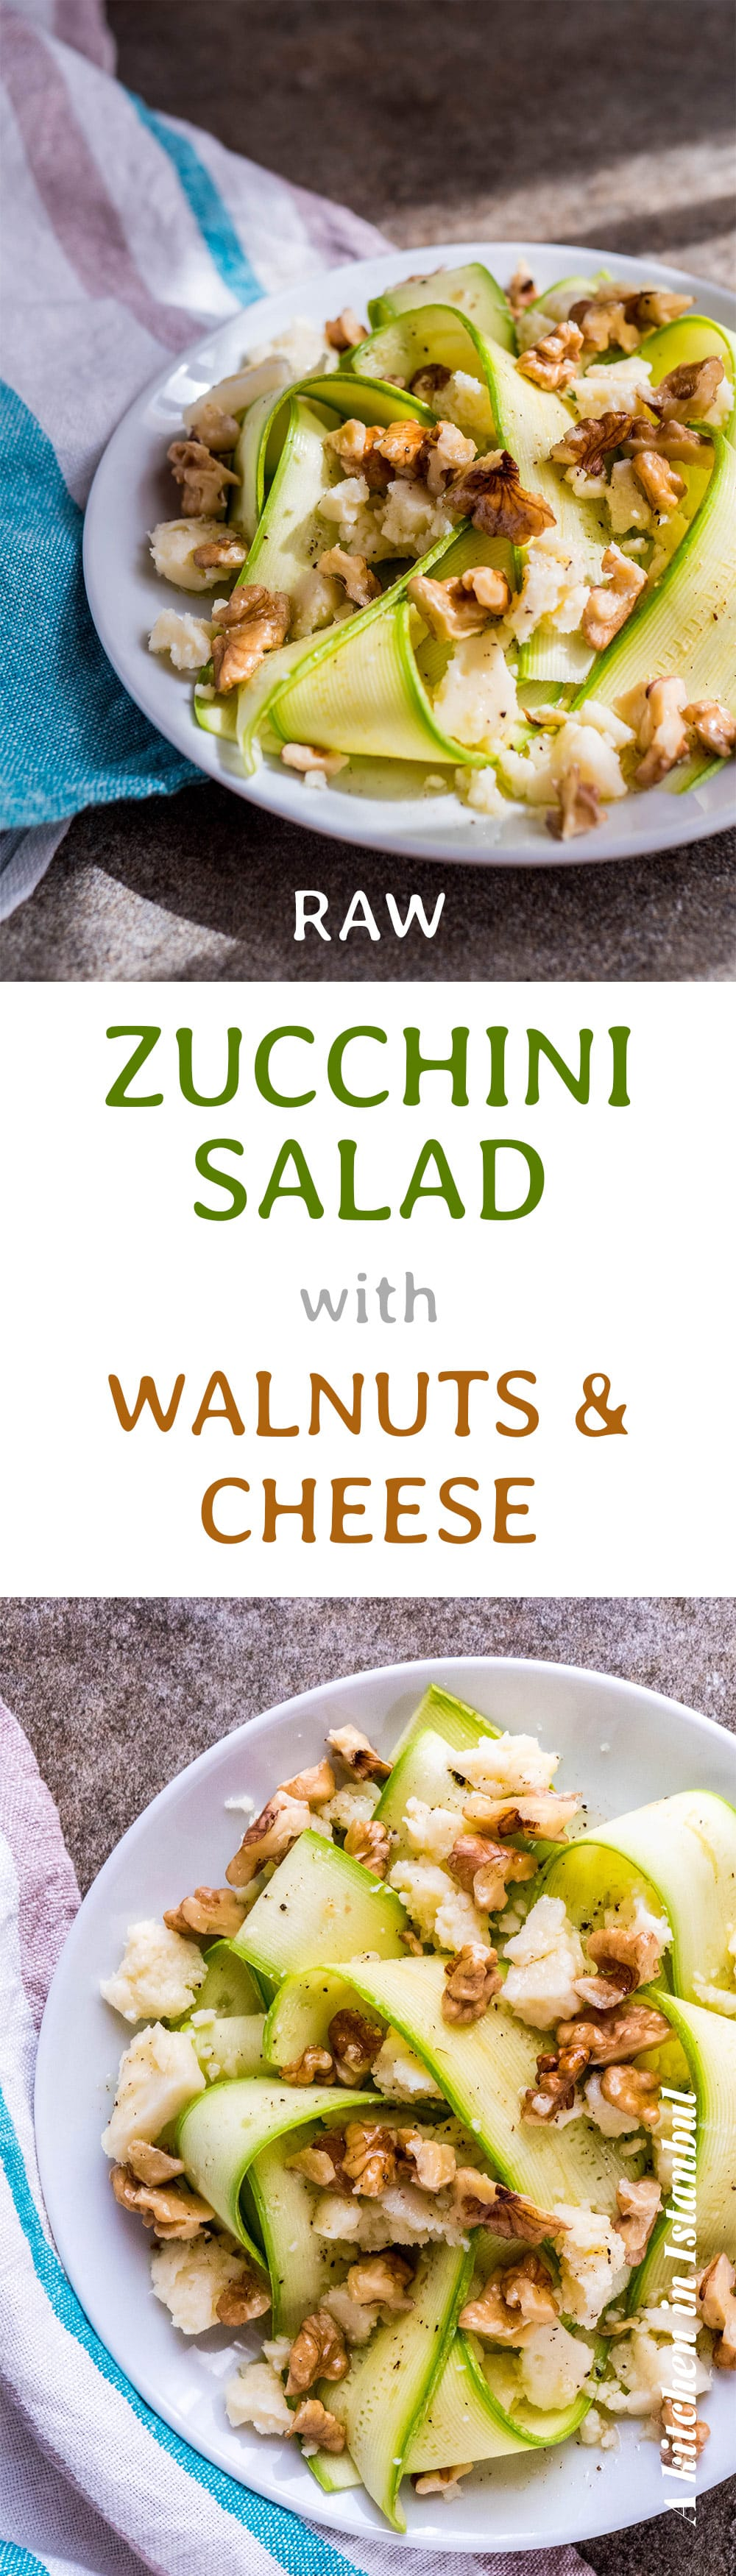 Raw zucchini salad with walnuts & cheese - recipe / A kitchen in Istanbul